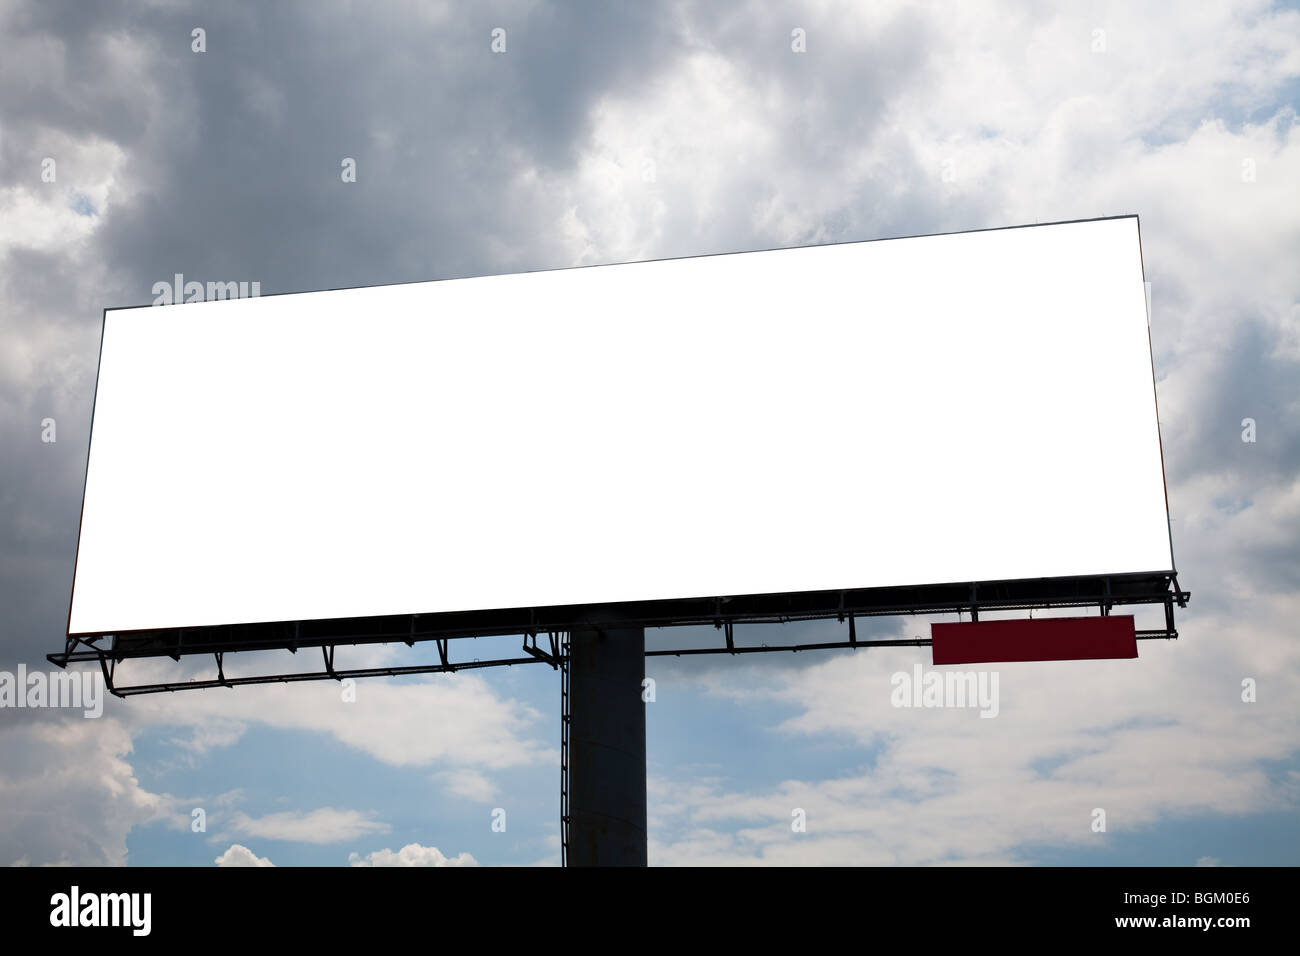 billboard - Stock Image